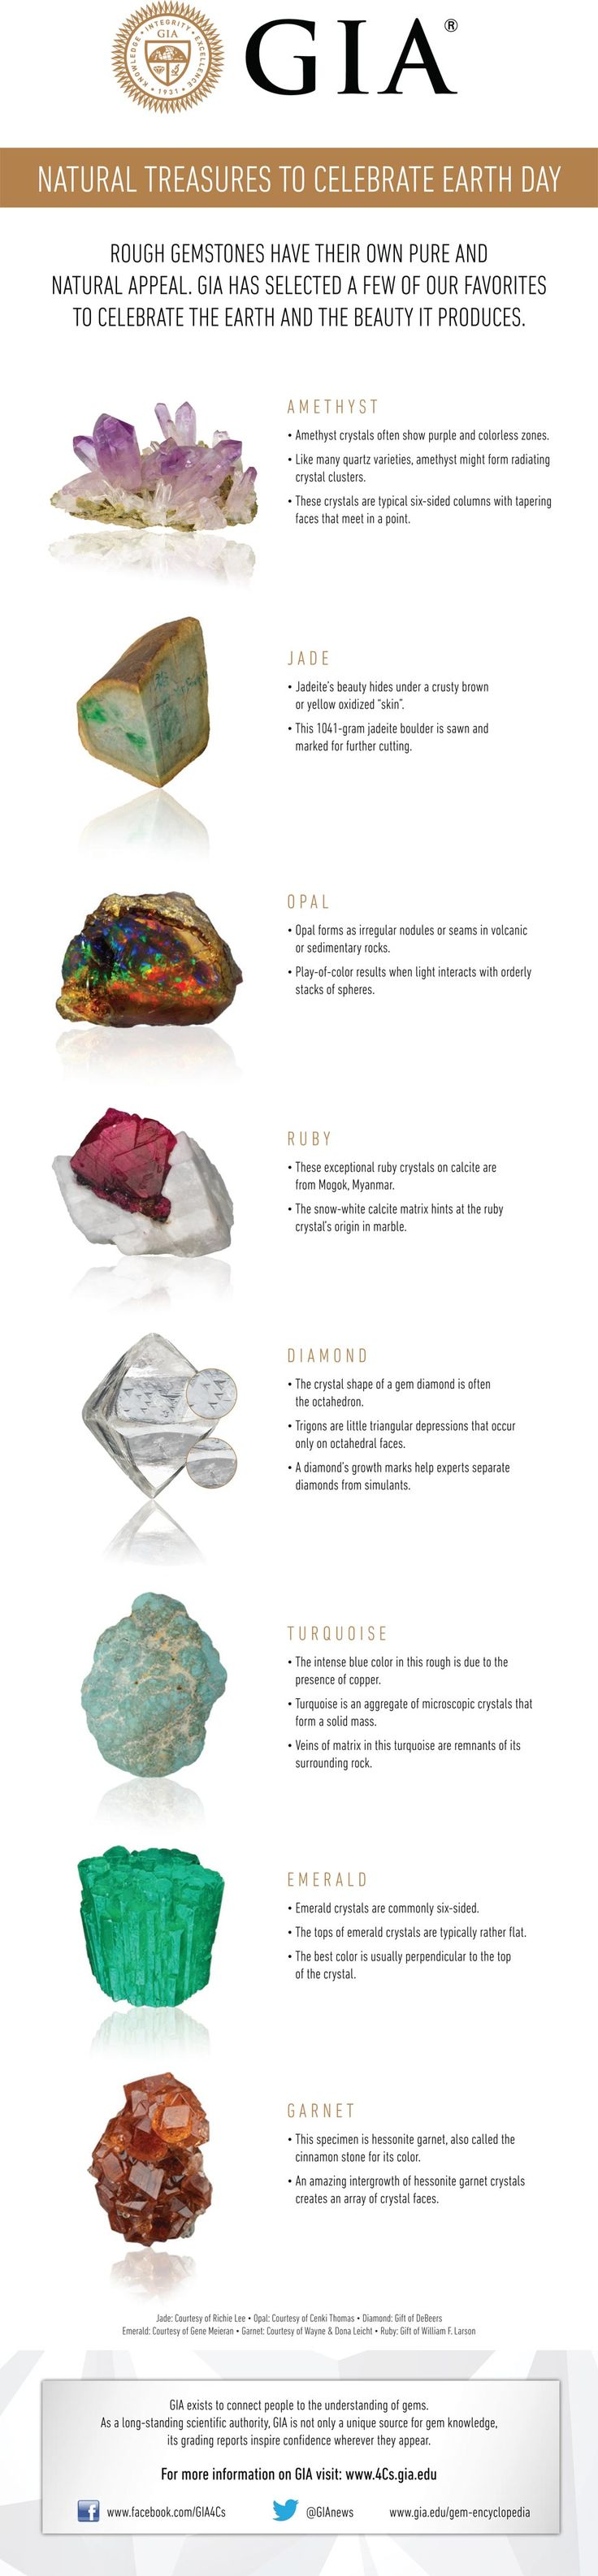 Gemstones: Natural Treasures to Celebrate Earth Day.